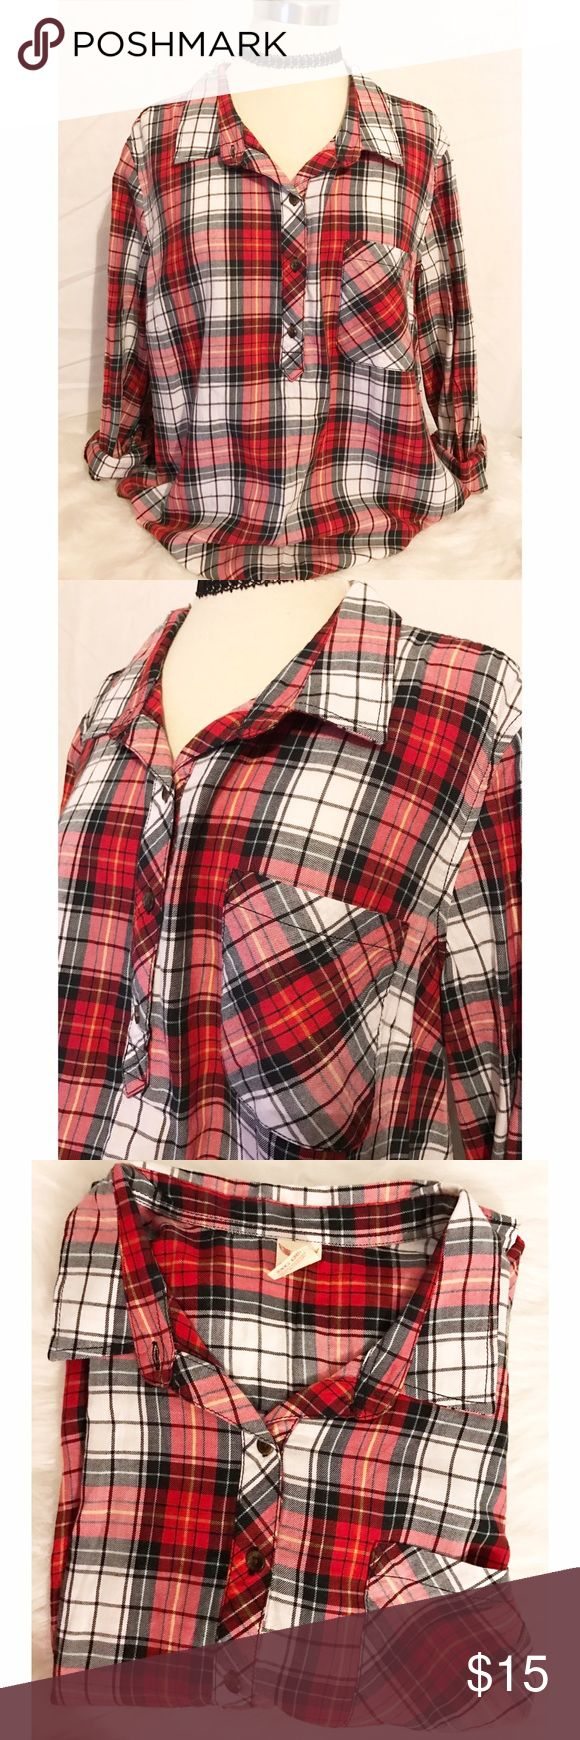 Faded glory silky flannel Never worn { no tags, I have a bad habit of taking them off soon as I get an item } soft silky flannel. Pocket on left side, ❤️ Faded Glory Tops Blouses